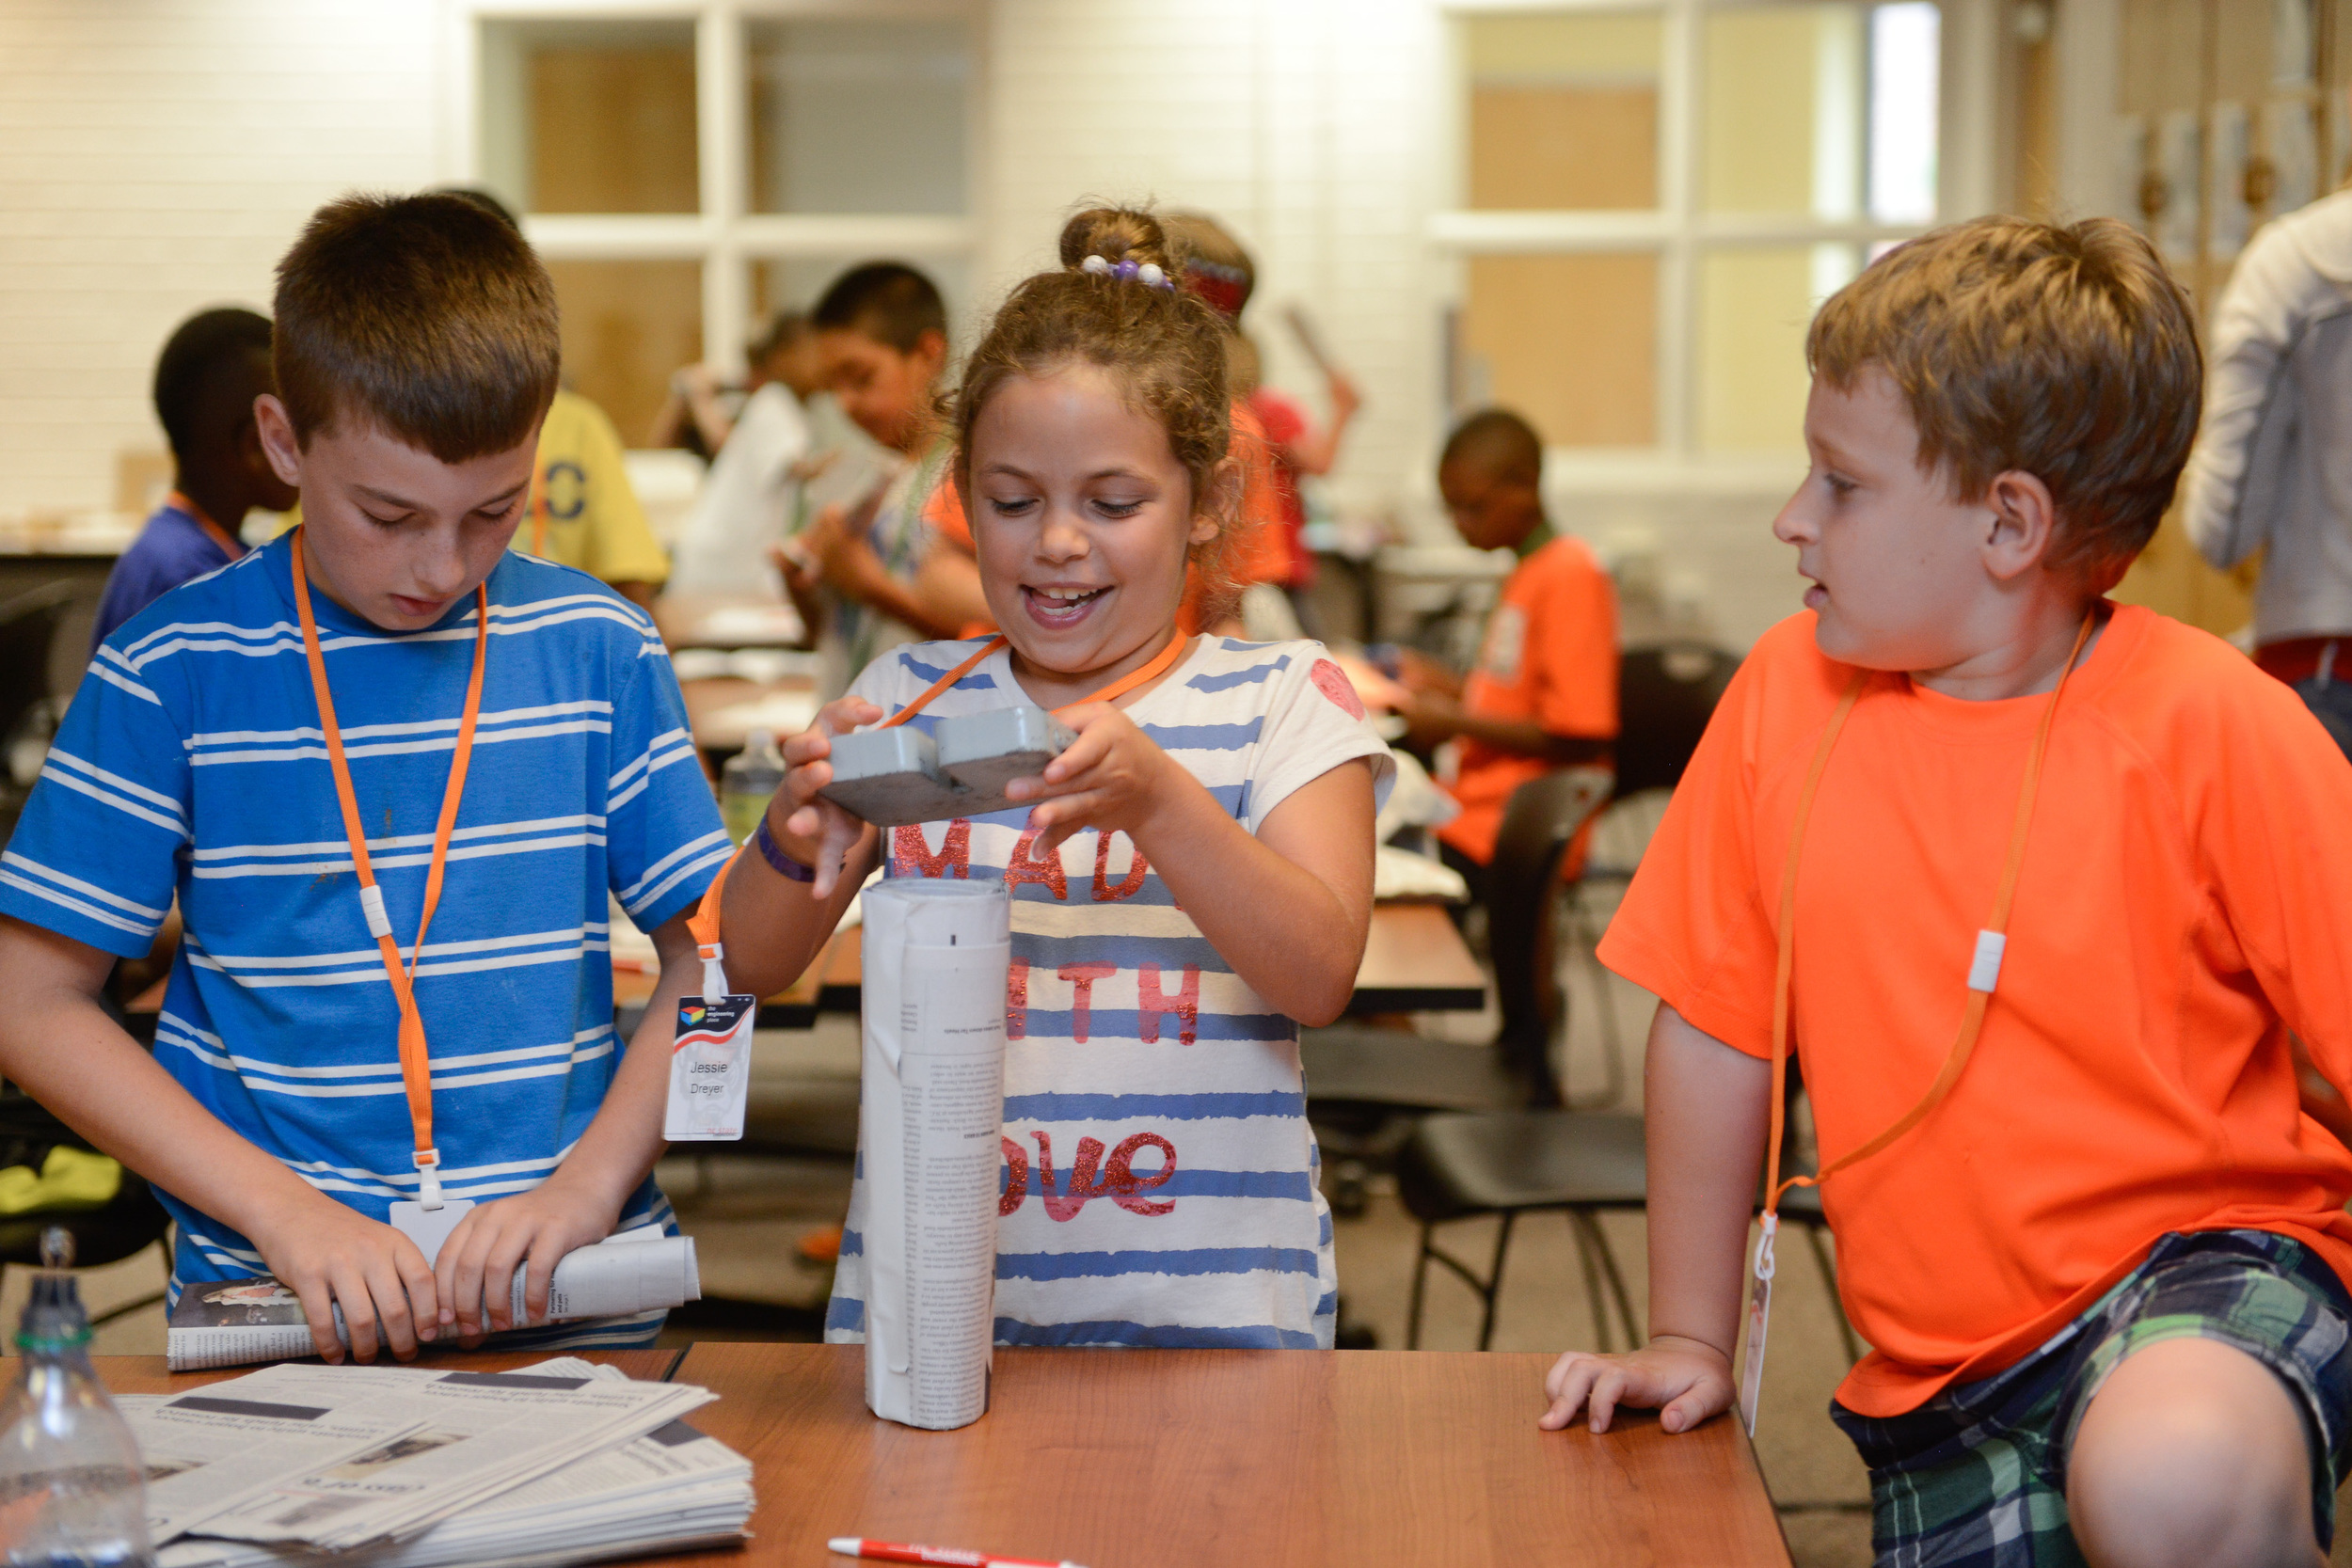 Many K-12 engineering programs deliver hands-on, collaborative learning experiences.